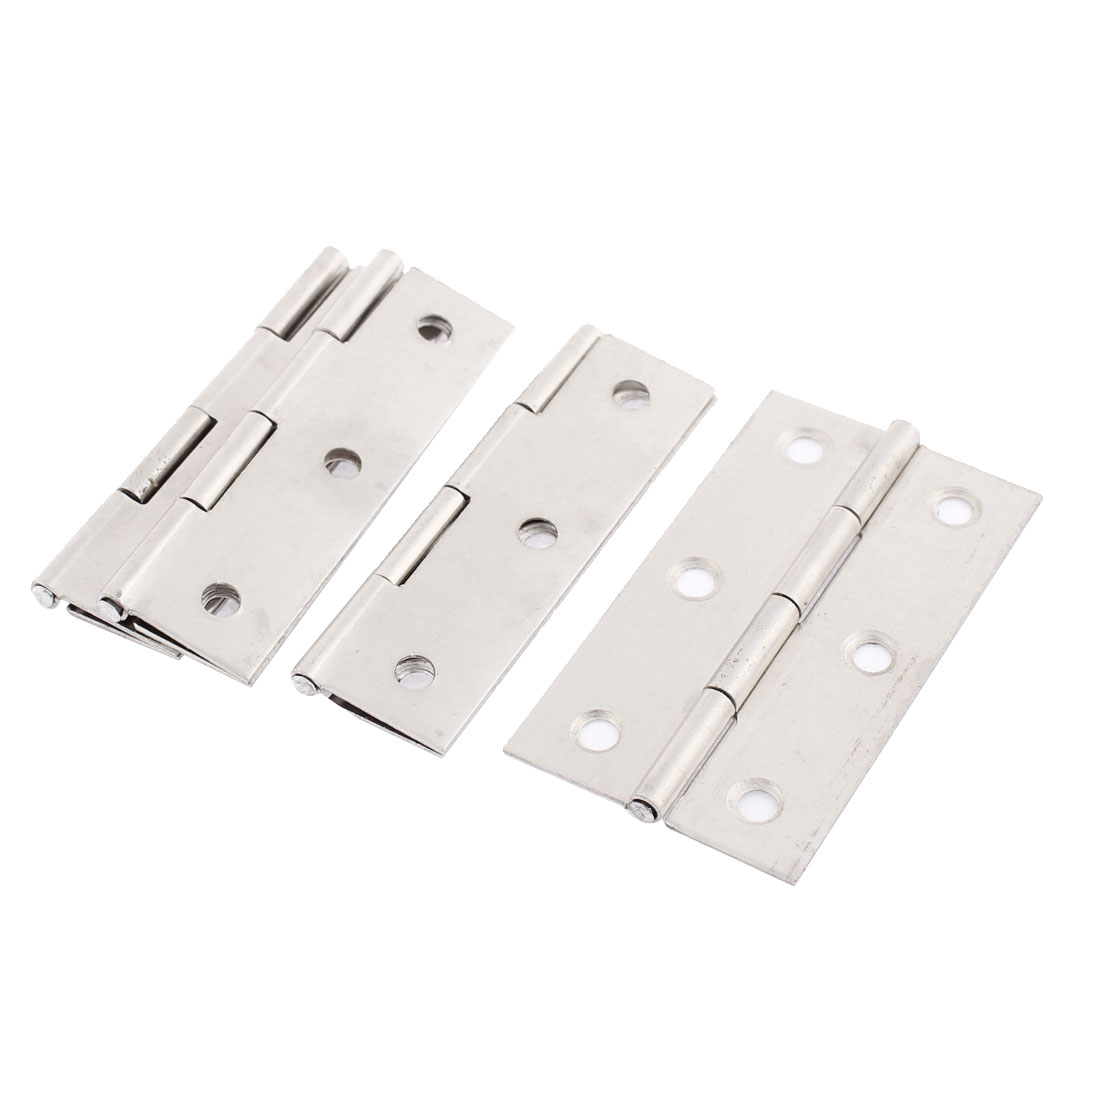 Cabinet Stainless Steel Screw Mounted Door Hinges 4PCS